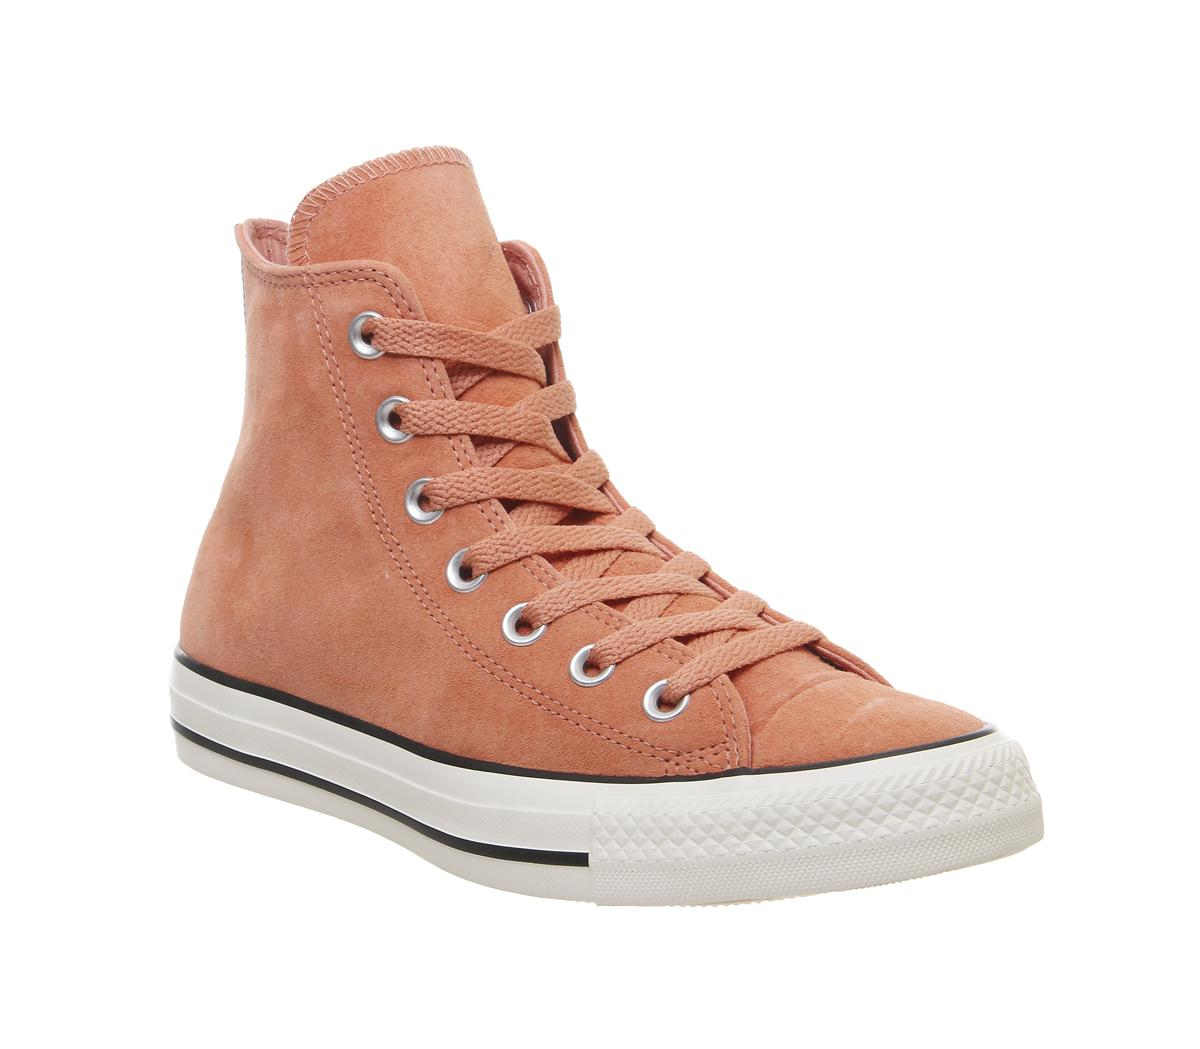 All Star Hi Leather Trainers